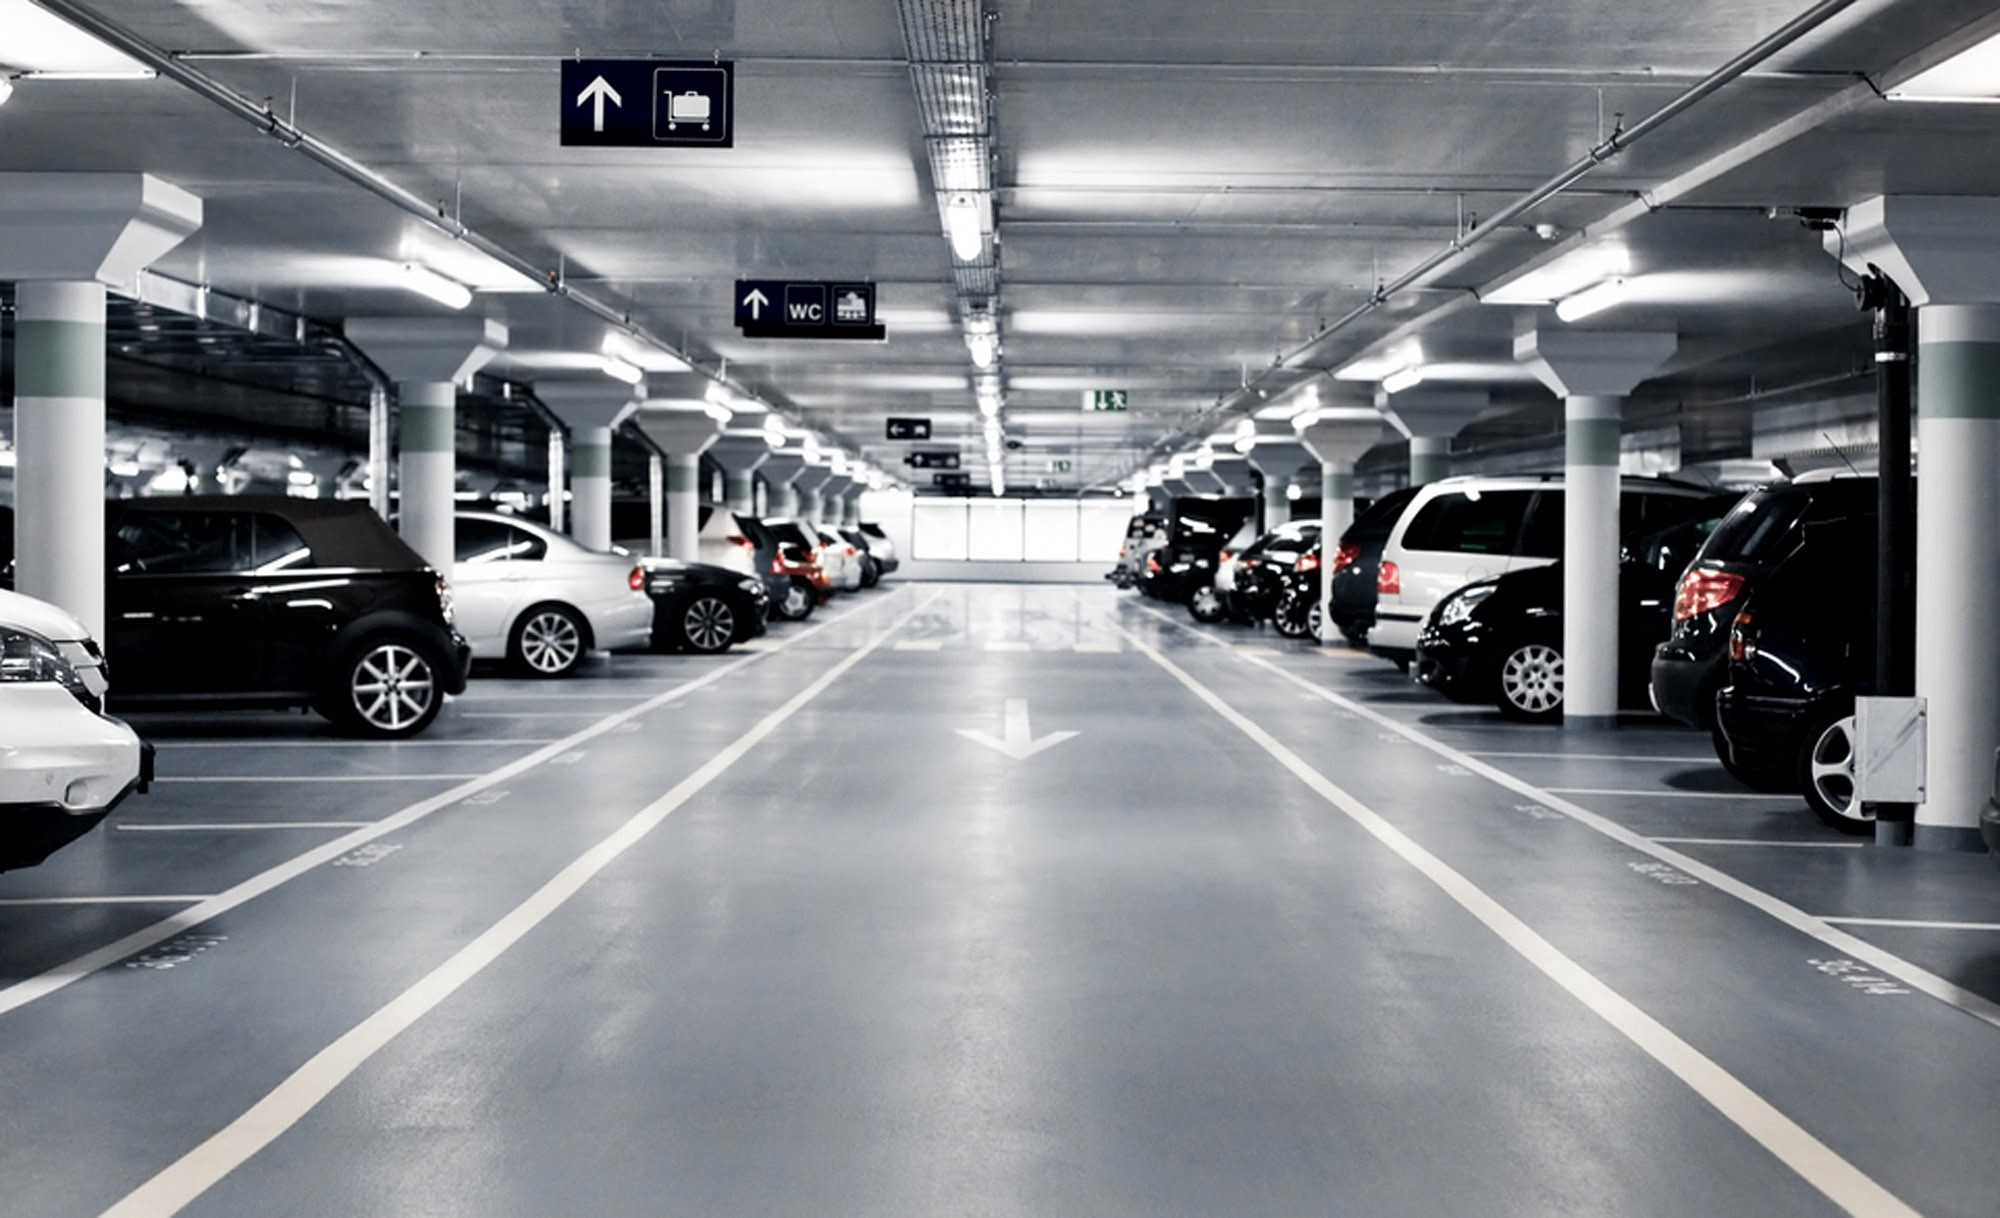 Drivers Who Can 'Bid' for Parking Spaces May Improve Parking Options Around the World